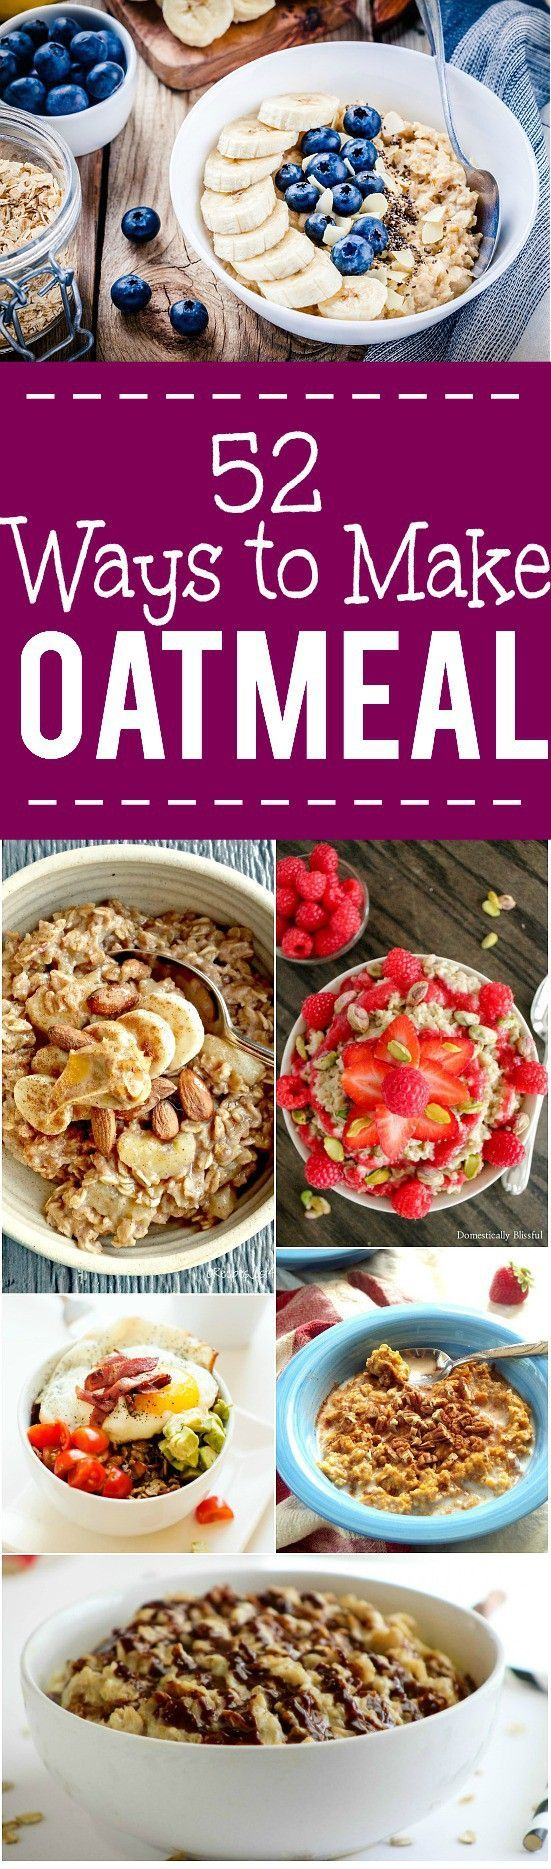 52 Breakfast Oatmeal Recipes - Over 50 new and delicious ways to eat your…